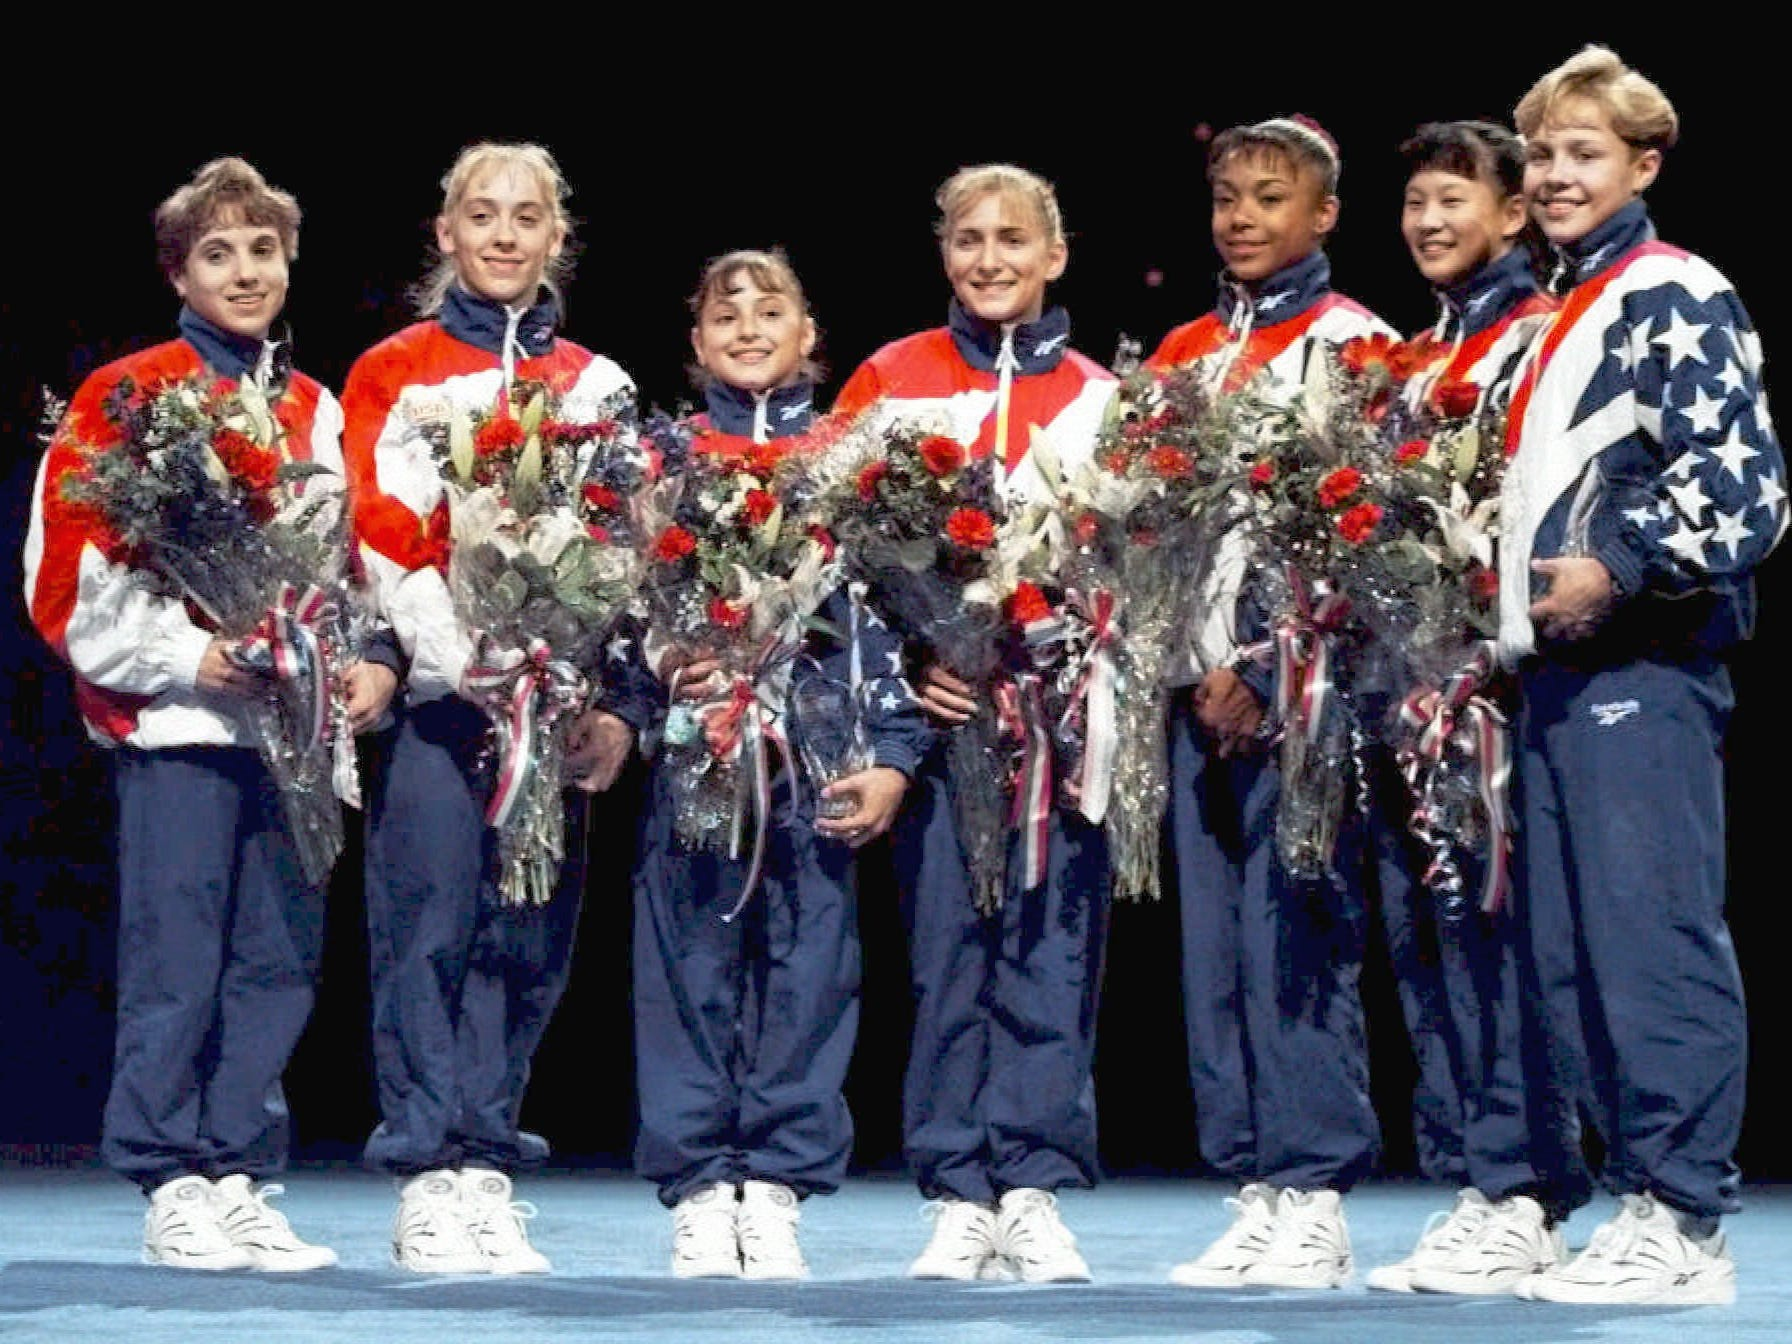 Amanda Borden, far right, was a the captain of the 1996 U.S. women's gymnastics team, which won the gold medal at the Atlanta Games.